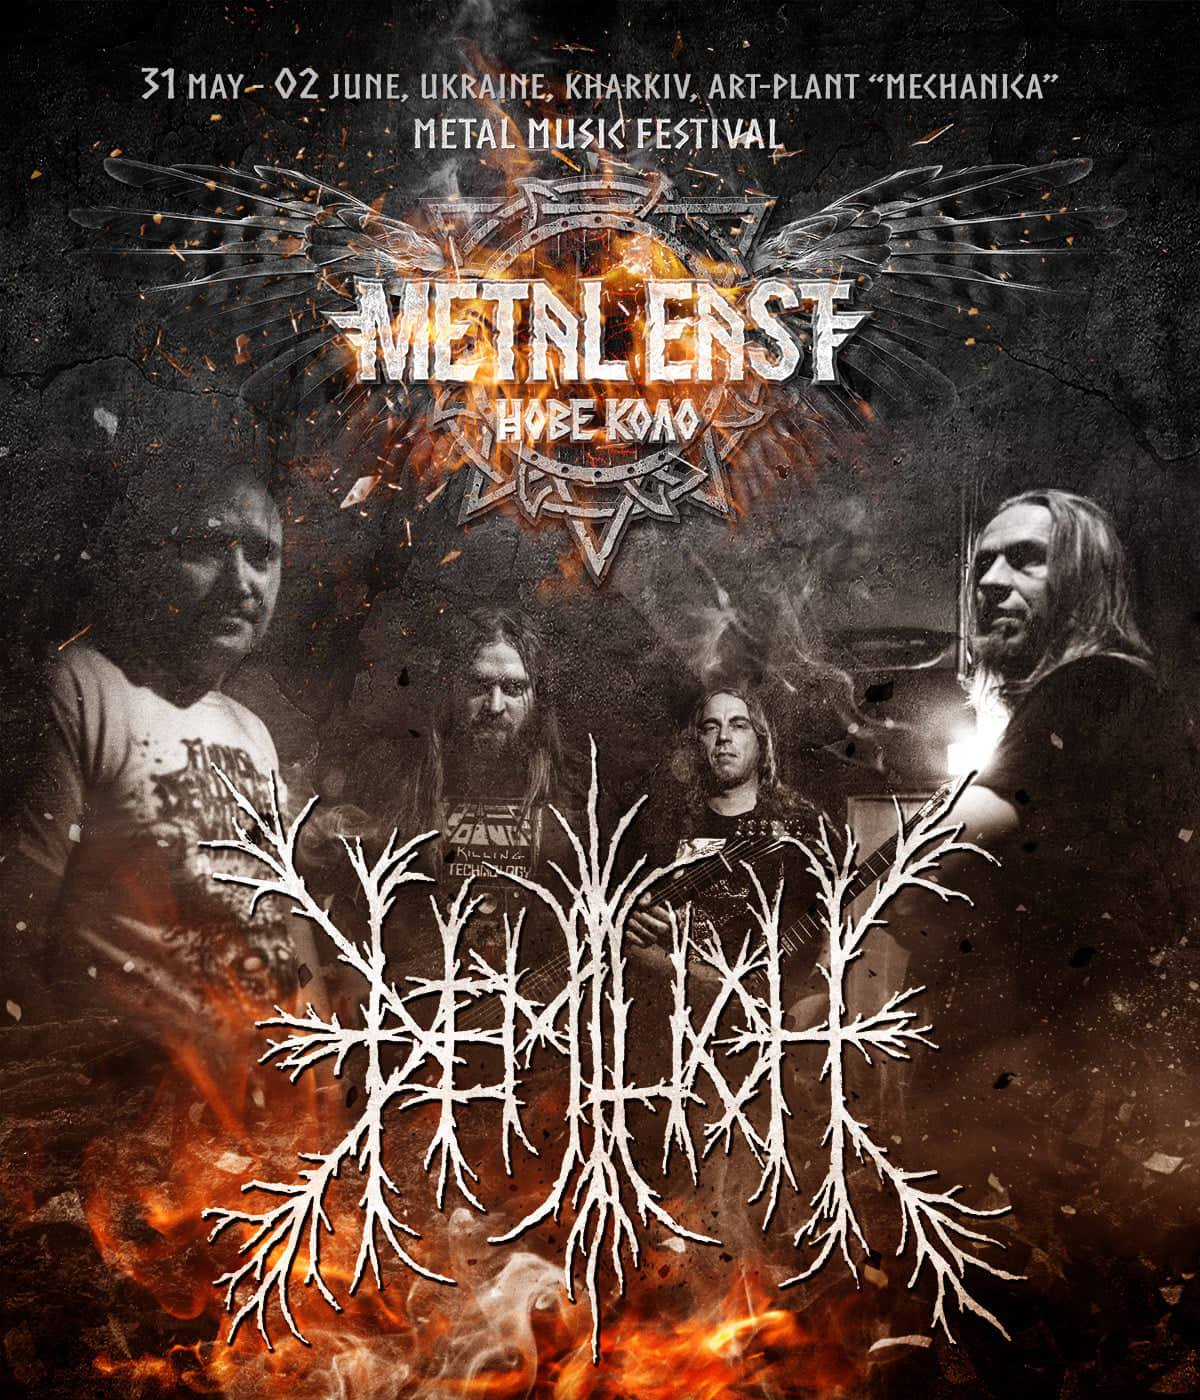 DEMILICH will be the guests at Metal East Nove Kolo festival in Kharkiv, Ukraine, from May 31st to June 2nd of 2019